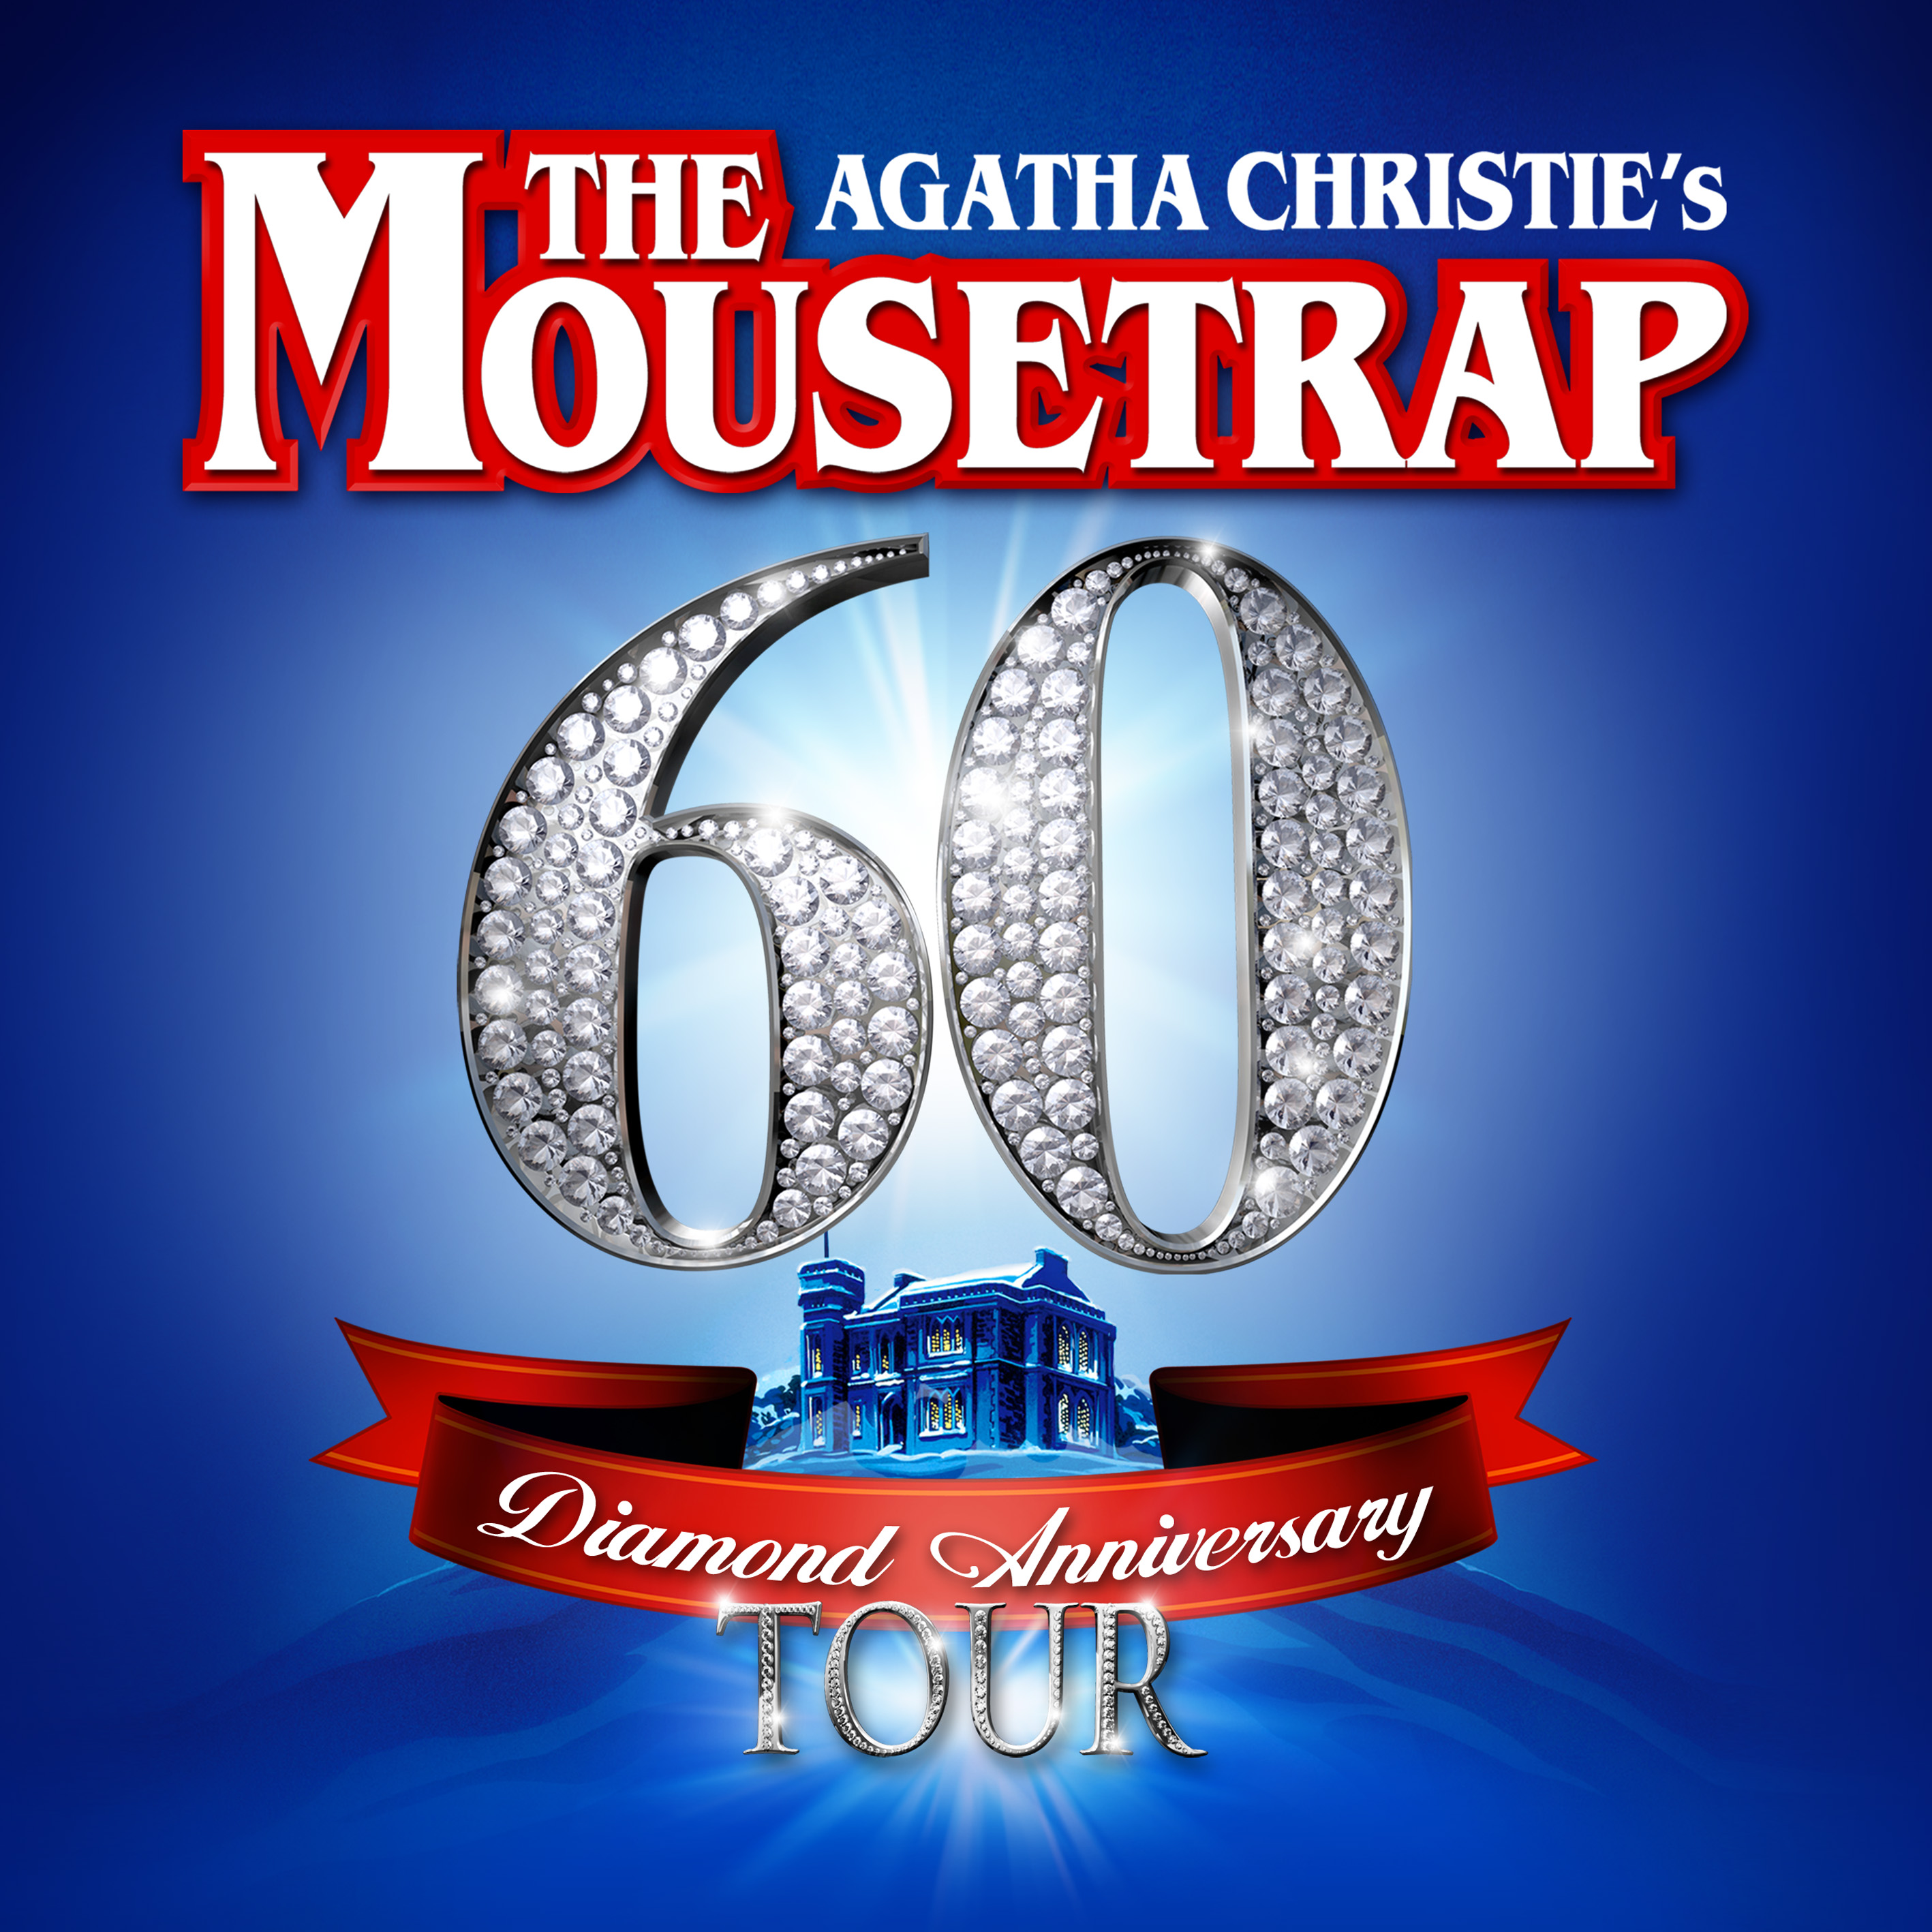 Mouse Trap, 60th Anniversary